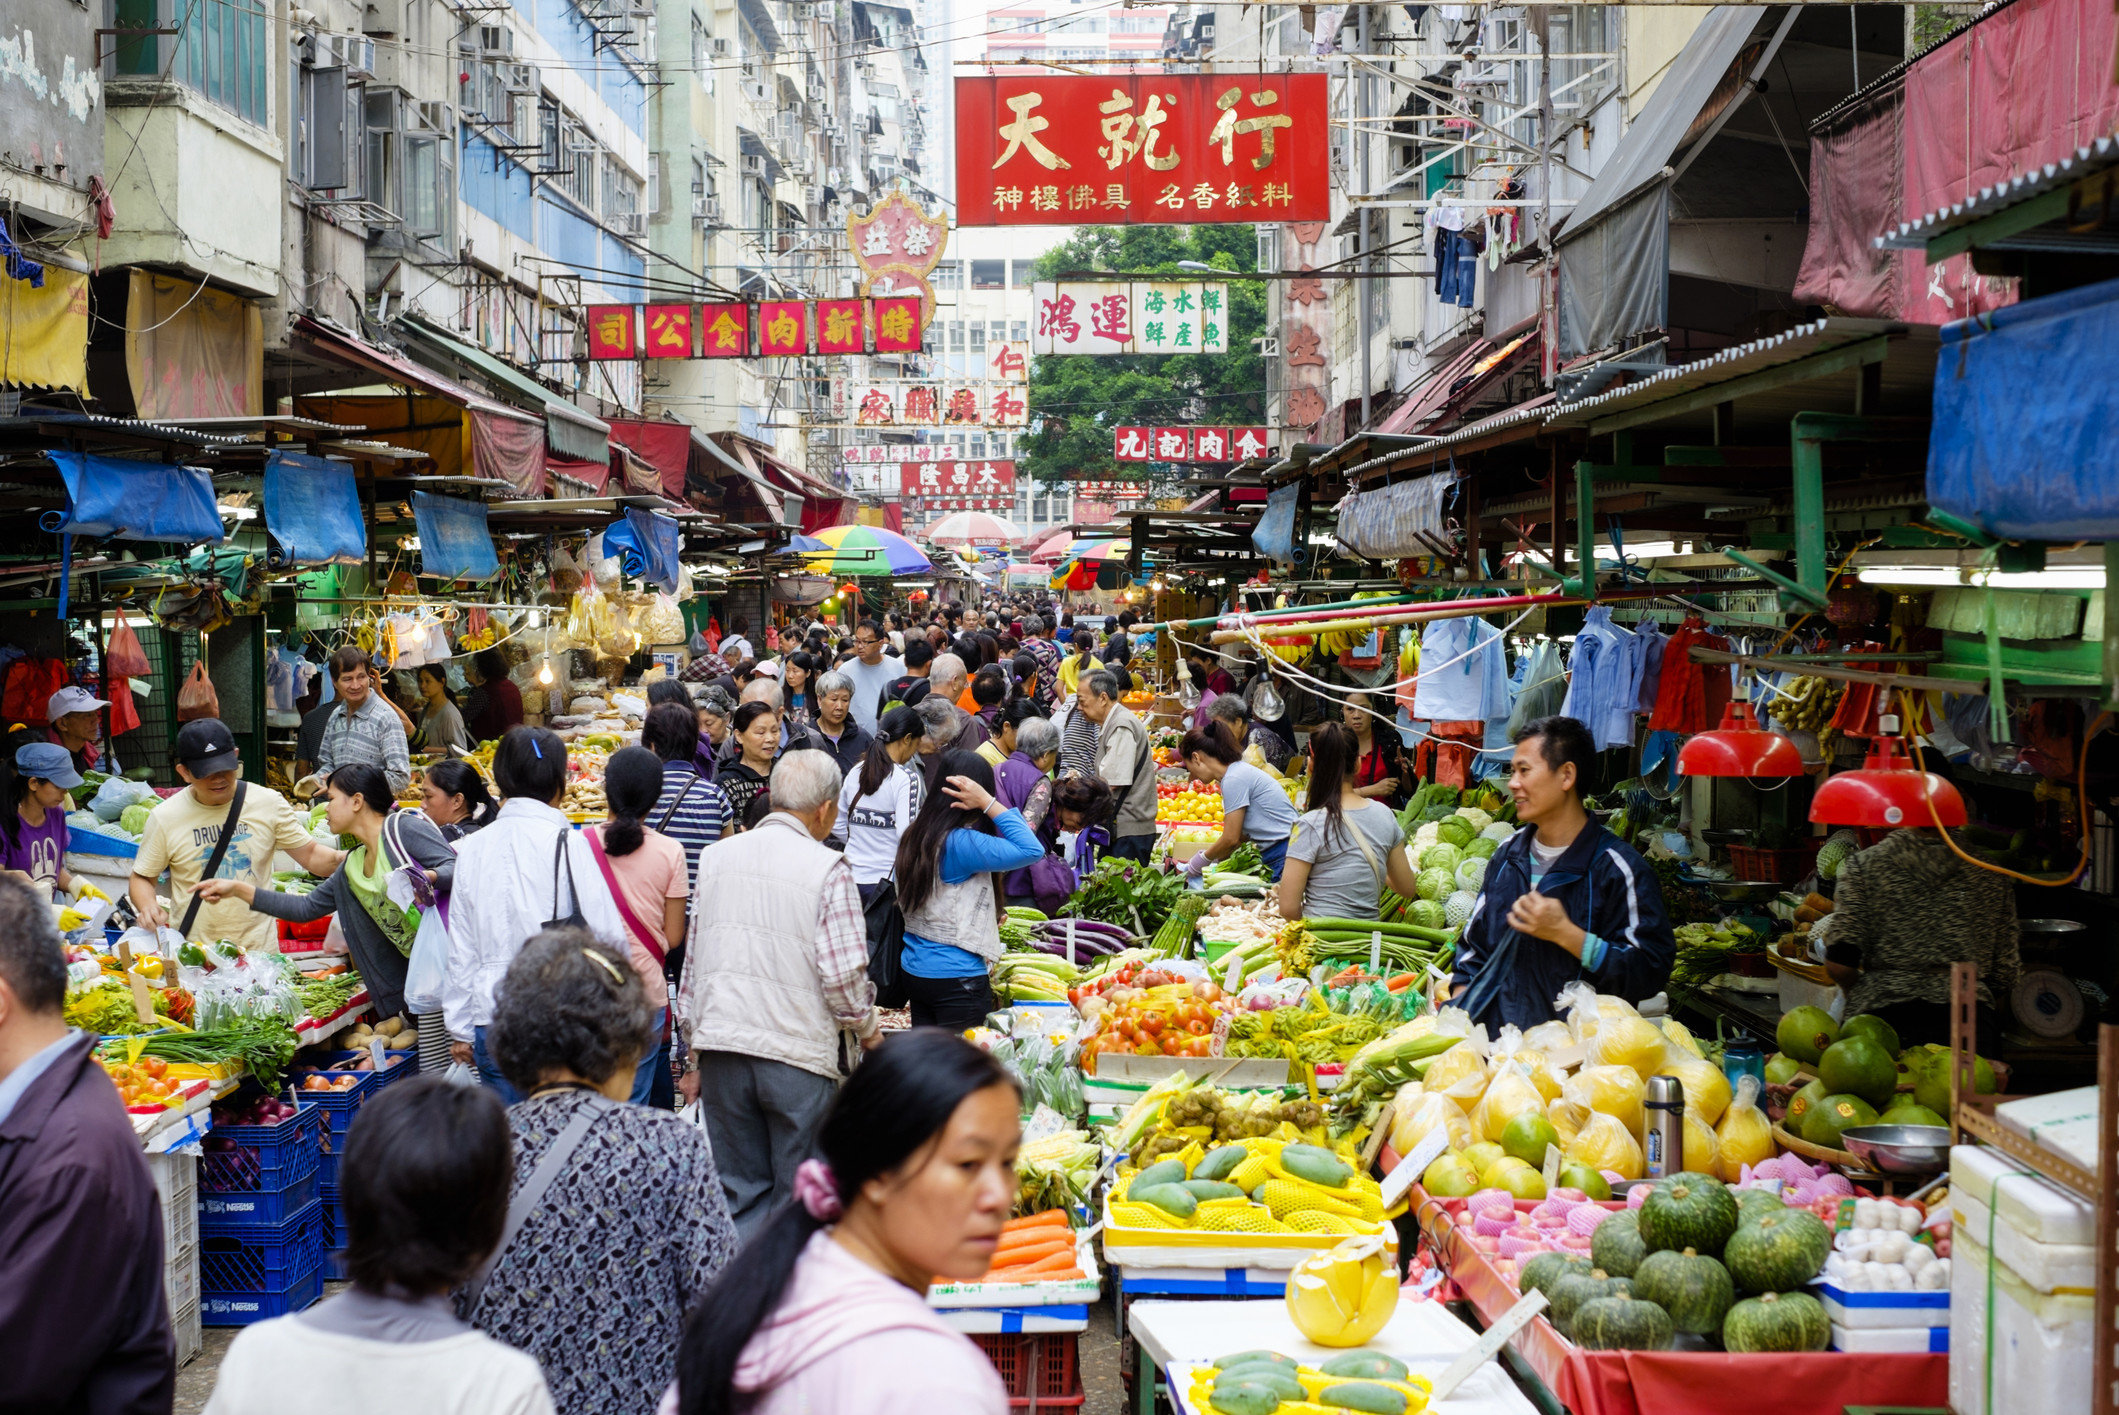 Secret Getaways Trip Ideas building person marketplace outdoor market produce scene bazaar fruit public space vendor greengrocer stall City street grocery store supermarket selling vegetable shopping shopkeeper hawker retail people grocer food crowd street food local food busy sale fresh